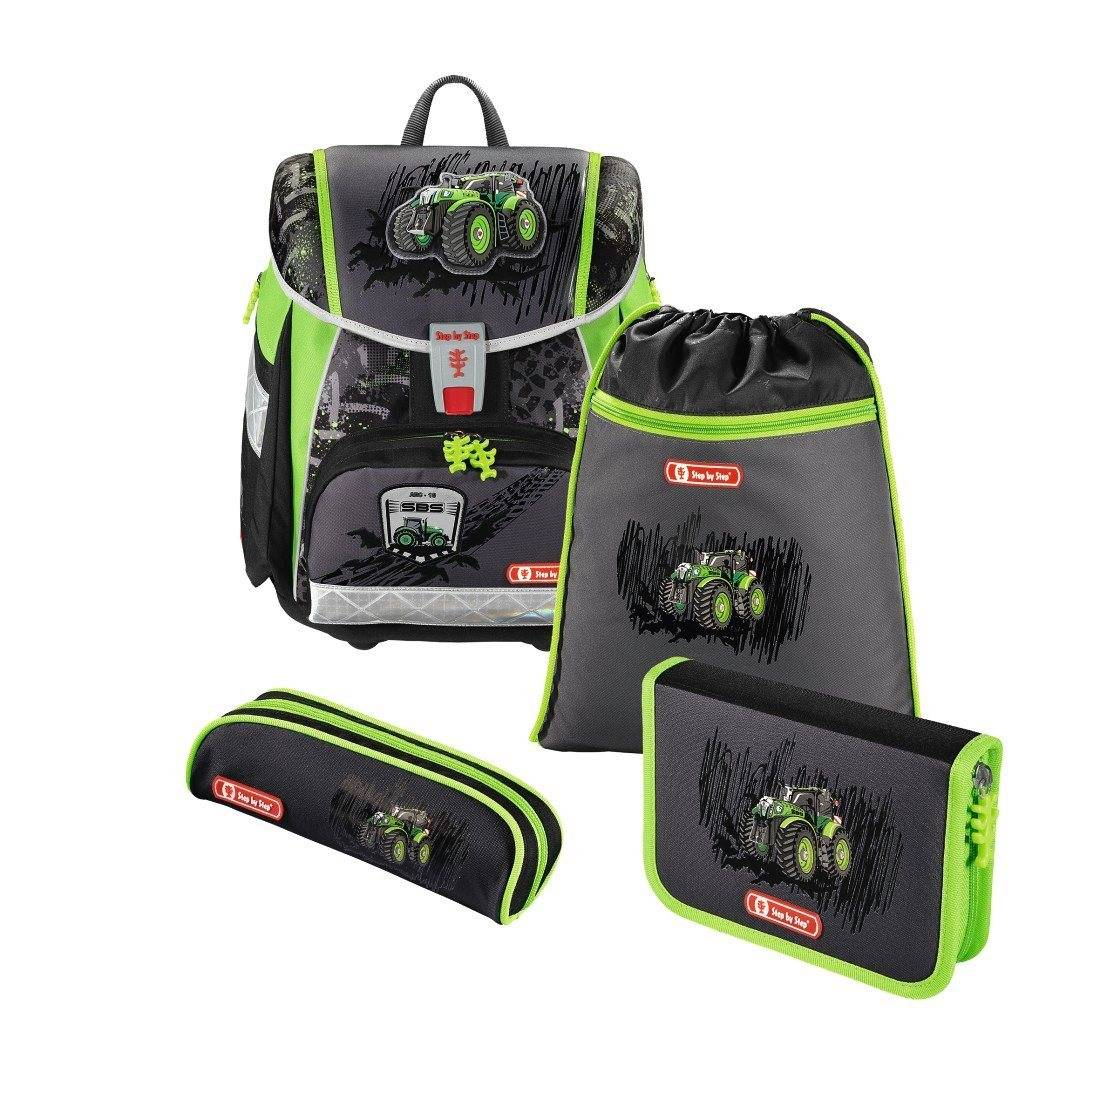 Step by Step Schulranzen Set Jungen Tornister Set TOUCH 2 »Green Tractor«